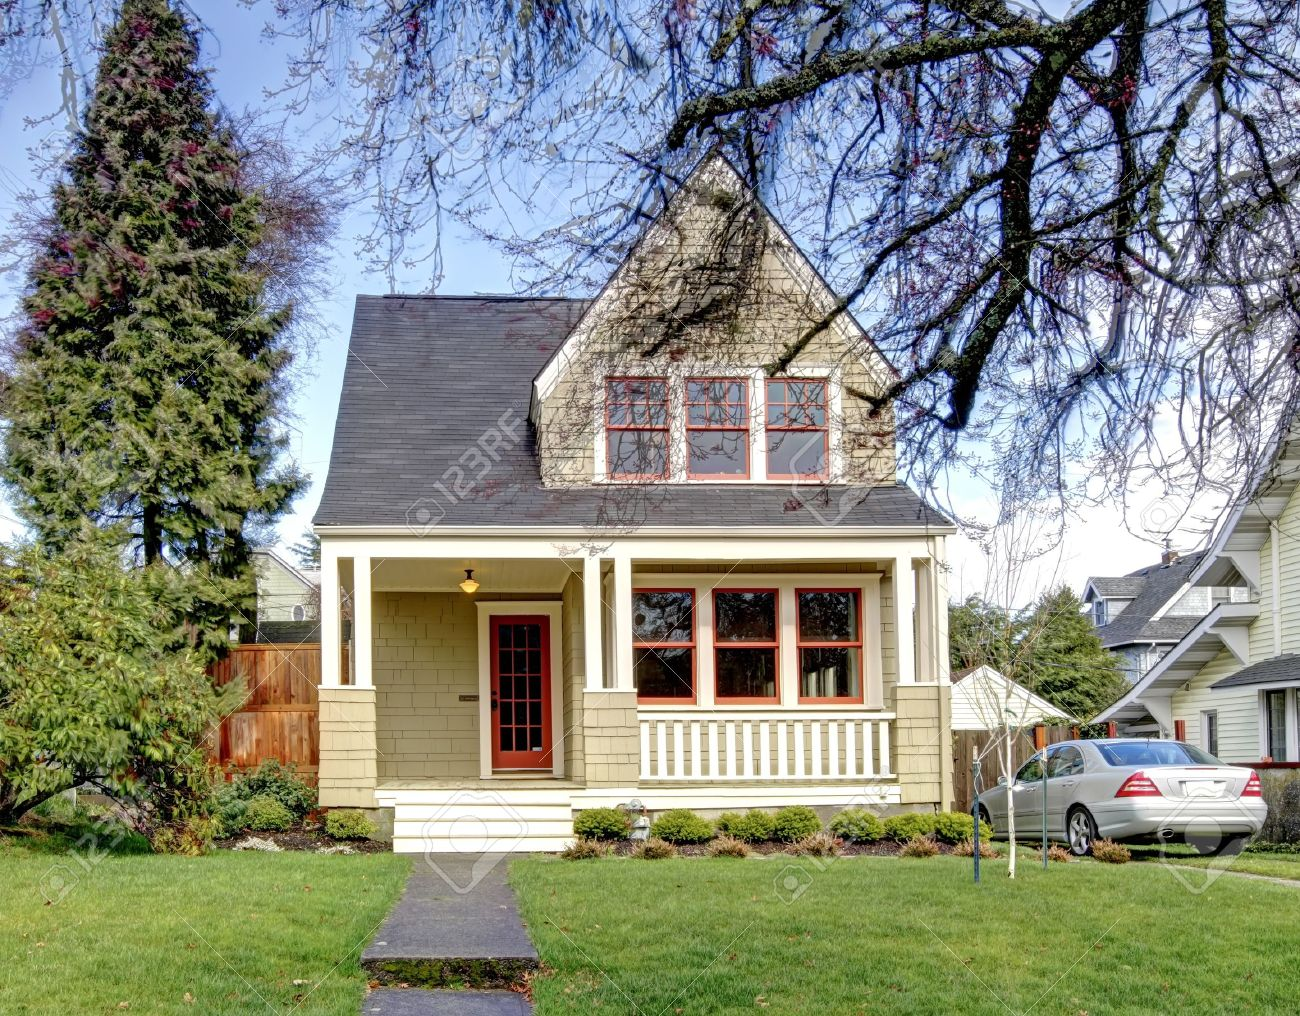 Craftsman Style: Green Craftsman Style House With The Silver Car.